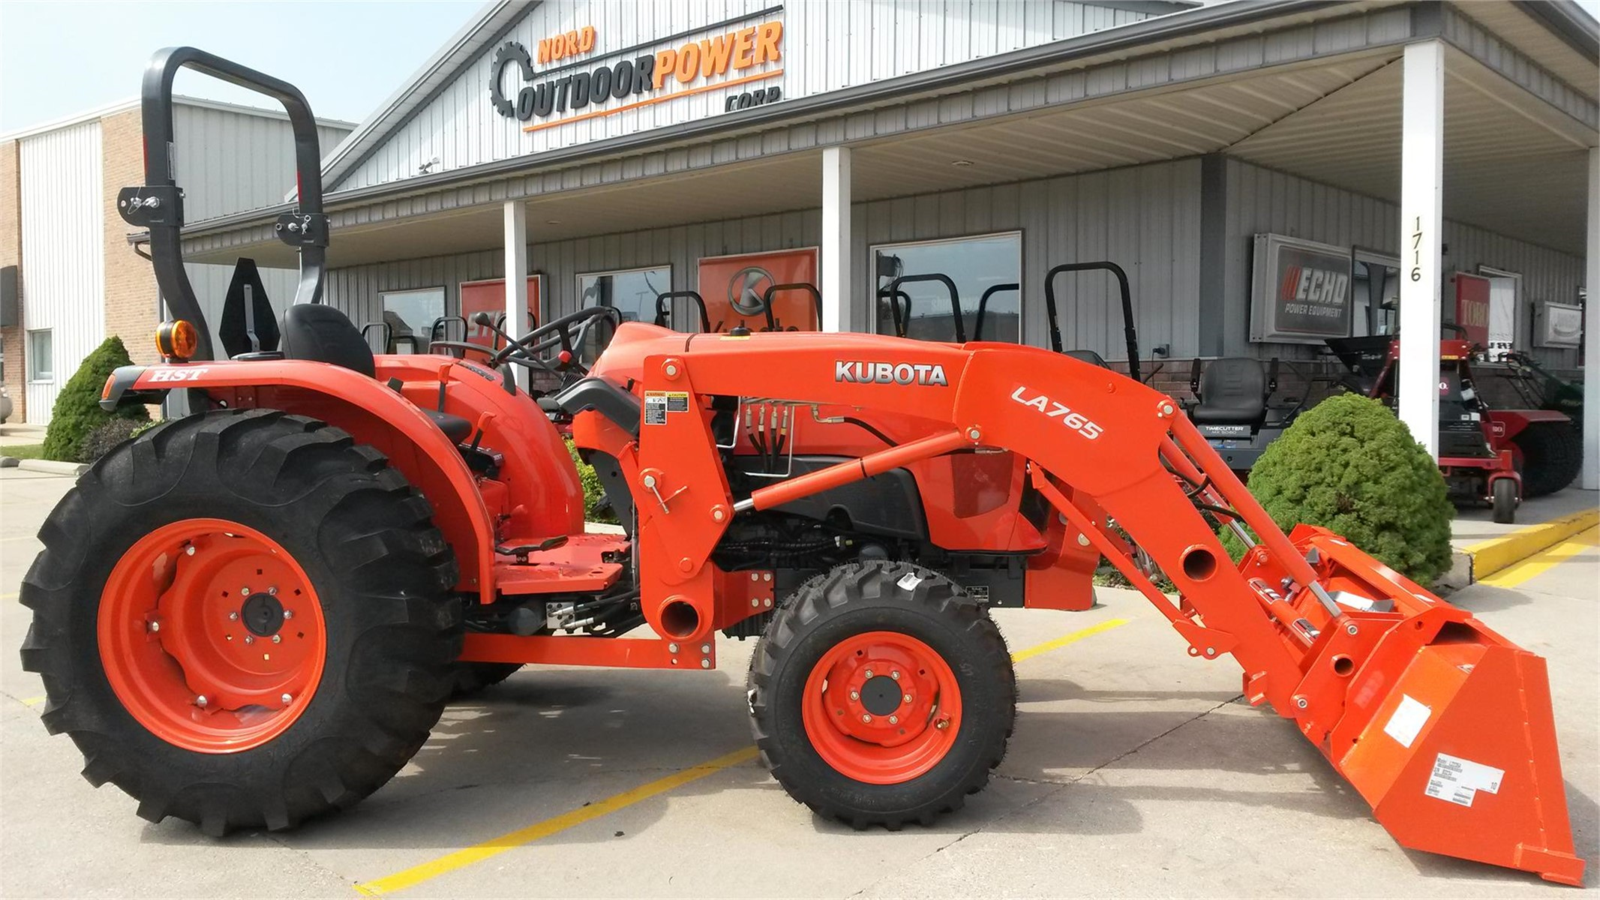 Kubota tractors for sale in kentucky - 2017 Kubota L4701 Hst 4wd Tractor For Sale In Bloomington Il Nord Outdoor Power Corp 888 309 6673